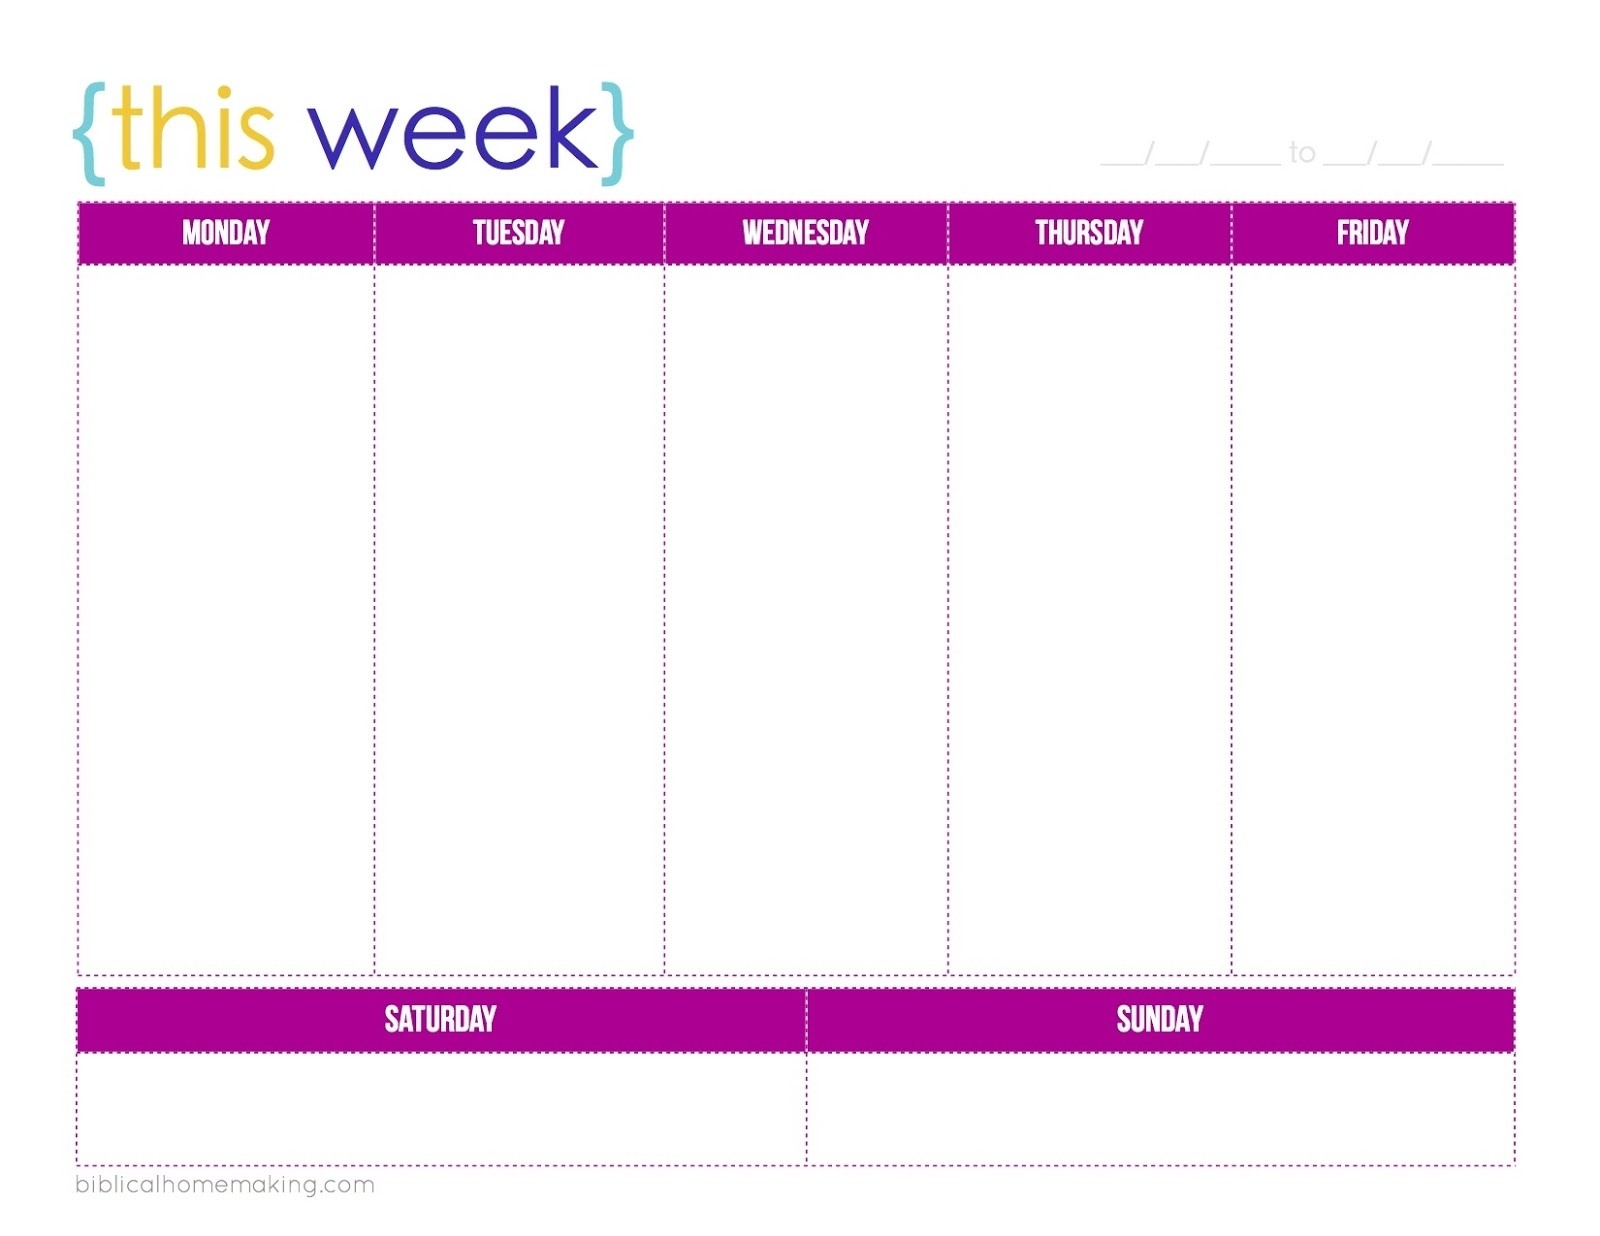 One Week Calendar Printable Schedule Ate Blank | Smorad regarding 1 Week Blank Calendar Template